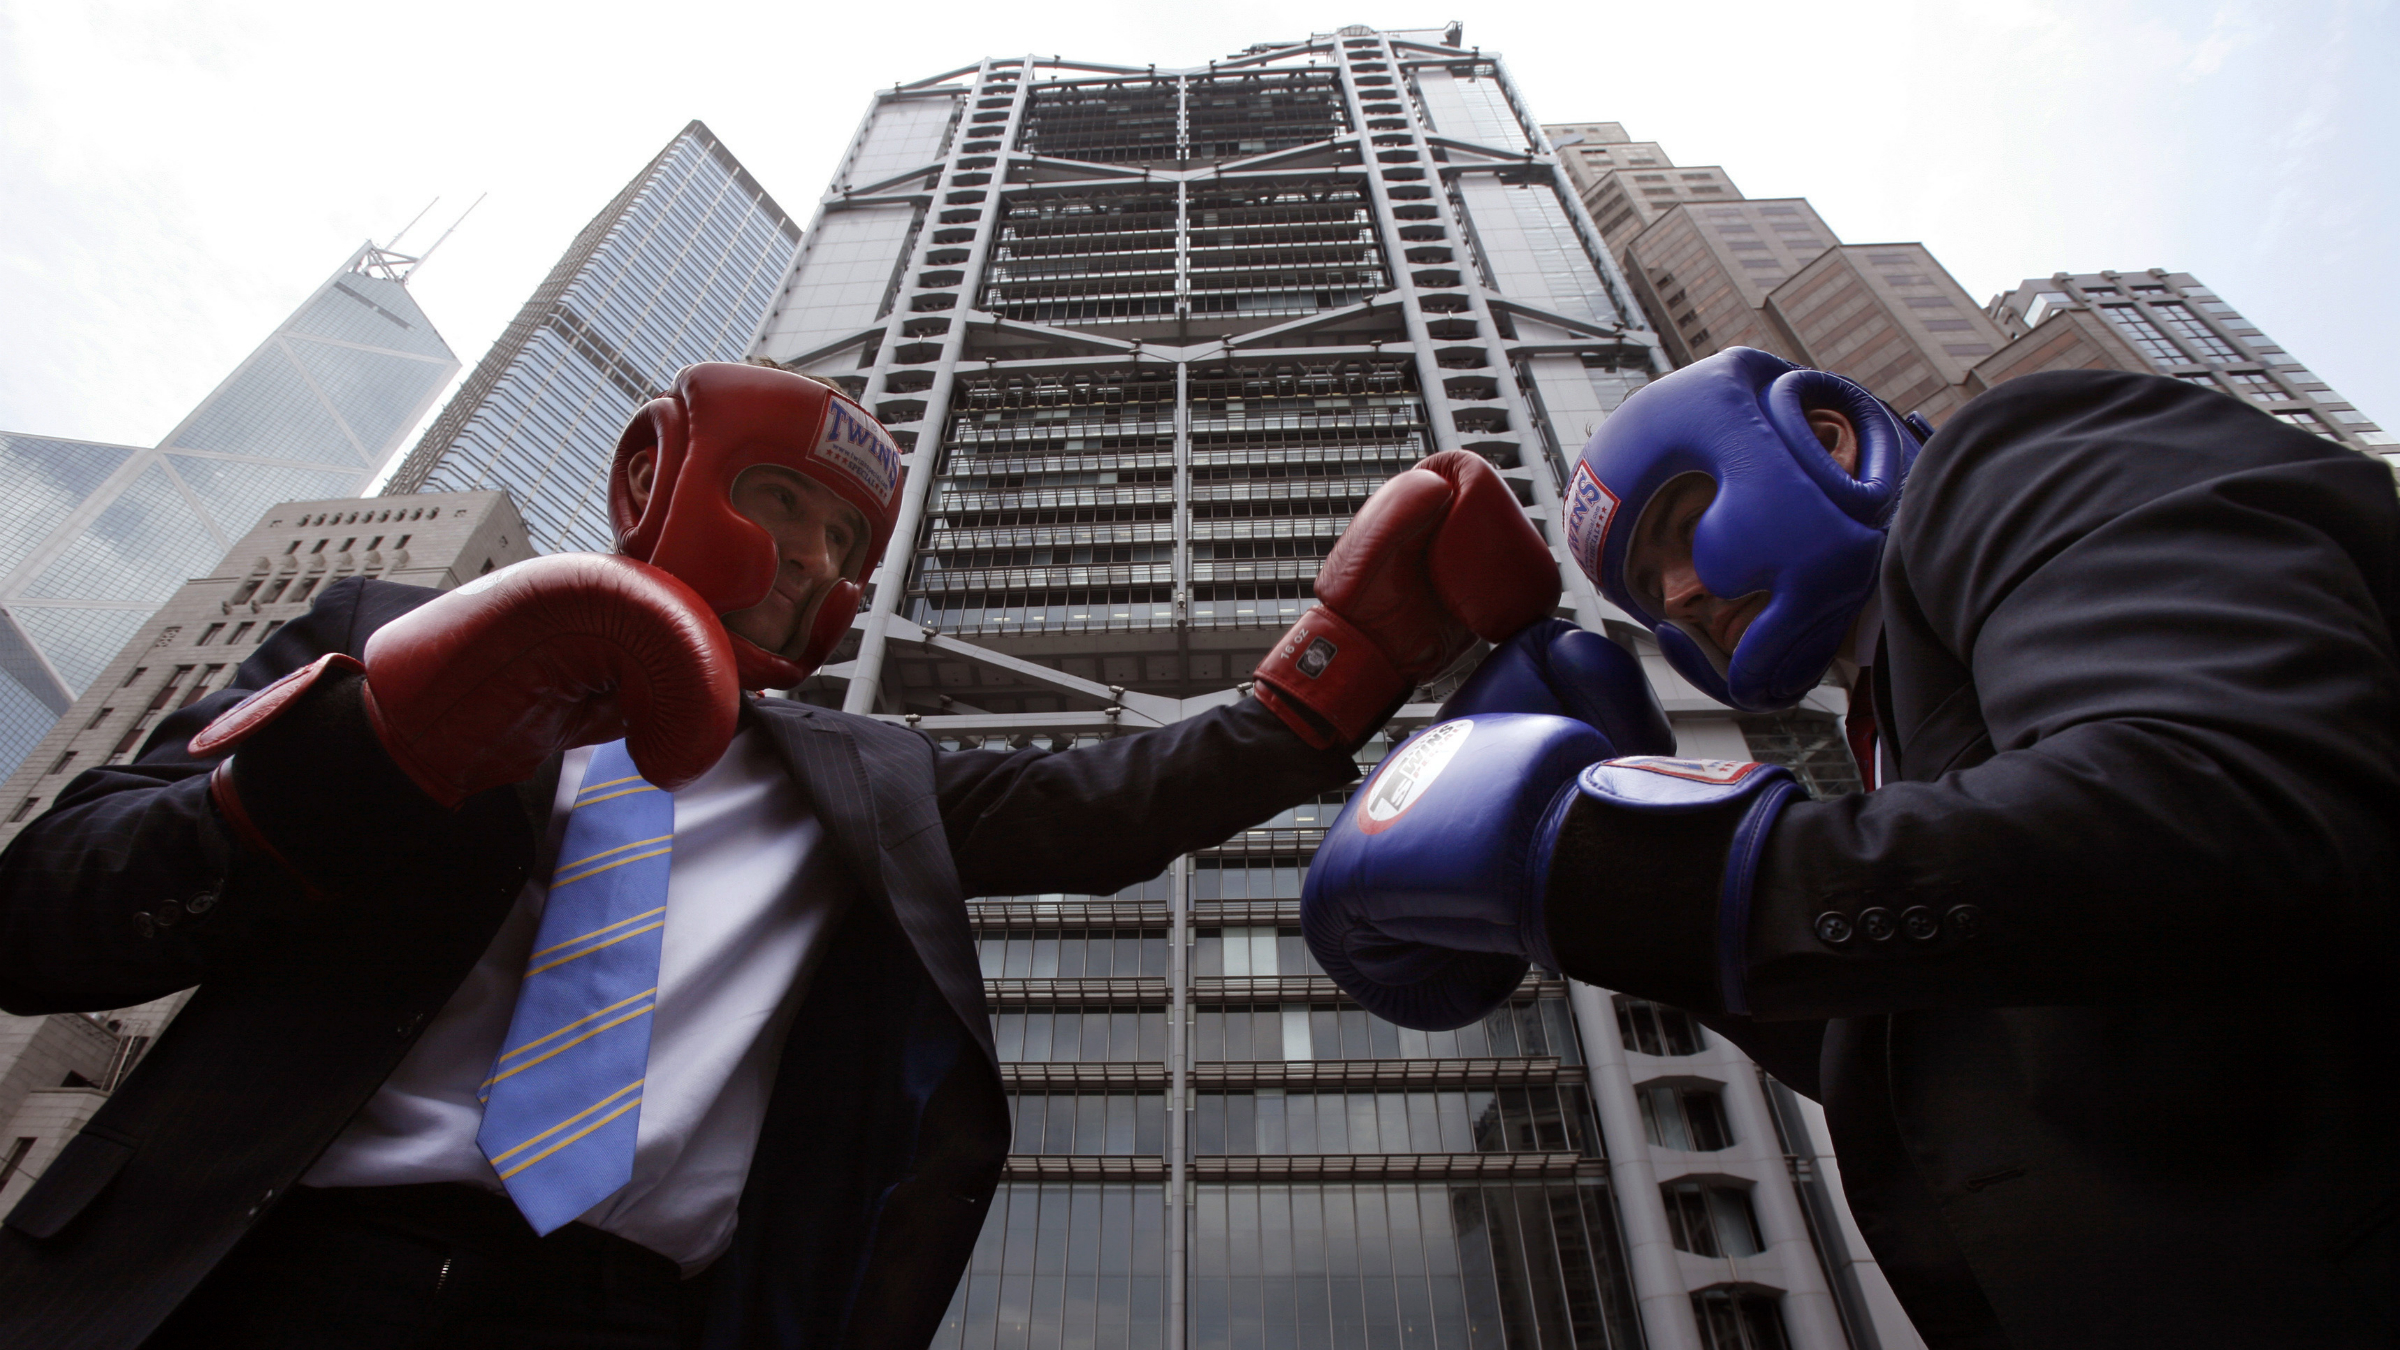 """Neil Hutchinson (L), Senior Wealth Manager of HSBC, poses with James Bryan in hedge fund management from Execuzen, outside HSBC headquarters during a promotion ahead of a """"Hedge Fund Fight Nite"""" charity event in Hong Kong September 2, 2009. Twelve of the 44 financiers who initially signed up to participate in the event will fight in the final rounds in October while 800 of their peers from the corporate and finance world of Hong Kong watch, according to a press release. REUTERS/Bobby Yip"""